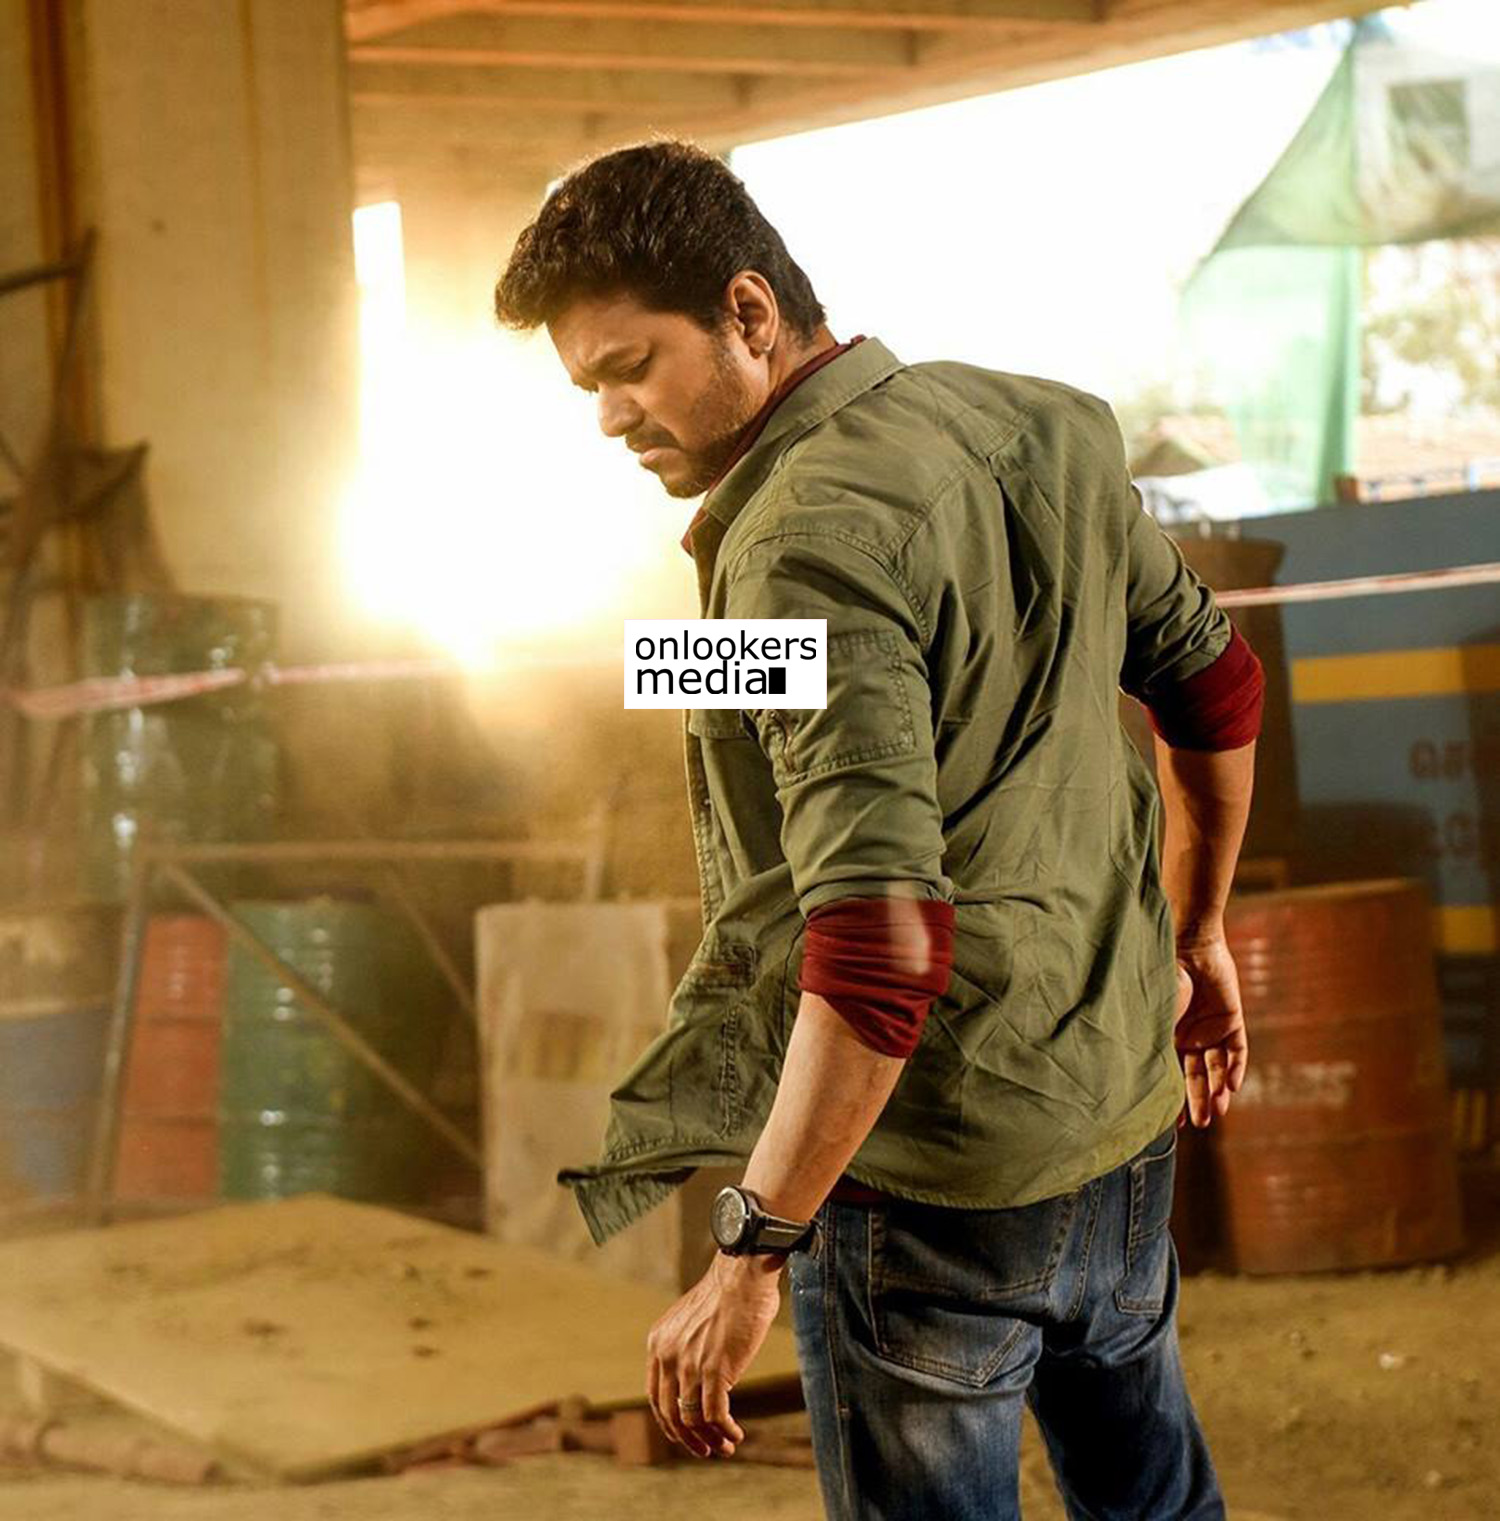 sarkar review,sarkar review rating report,sarkar hit or flop,sarkar tamil movie review,thalapathy vijay's sarkar review,ar murugadoss sarkar review,sarkar movie stills,sarkar poster,thalapathy vijay's sarkar movie stills